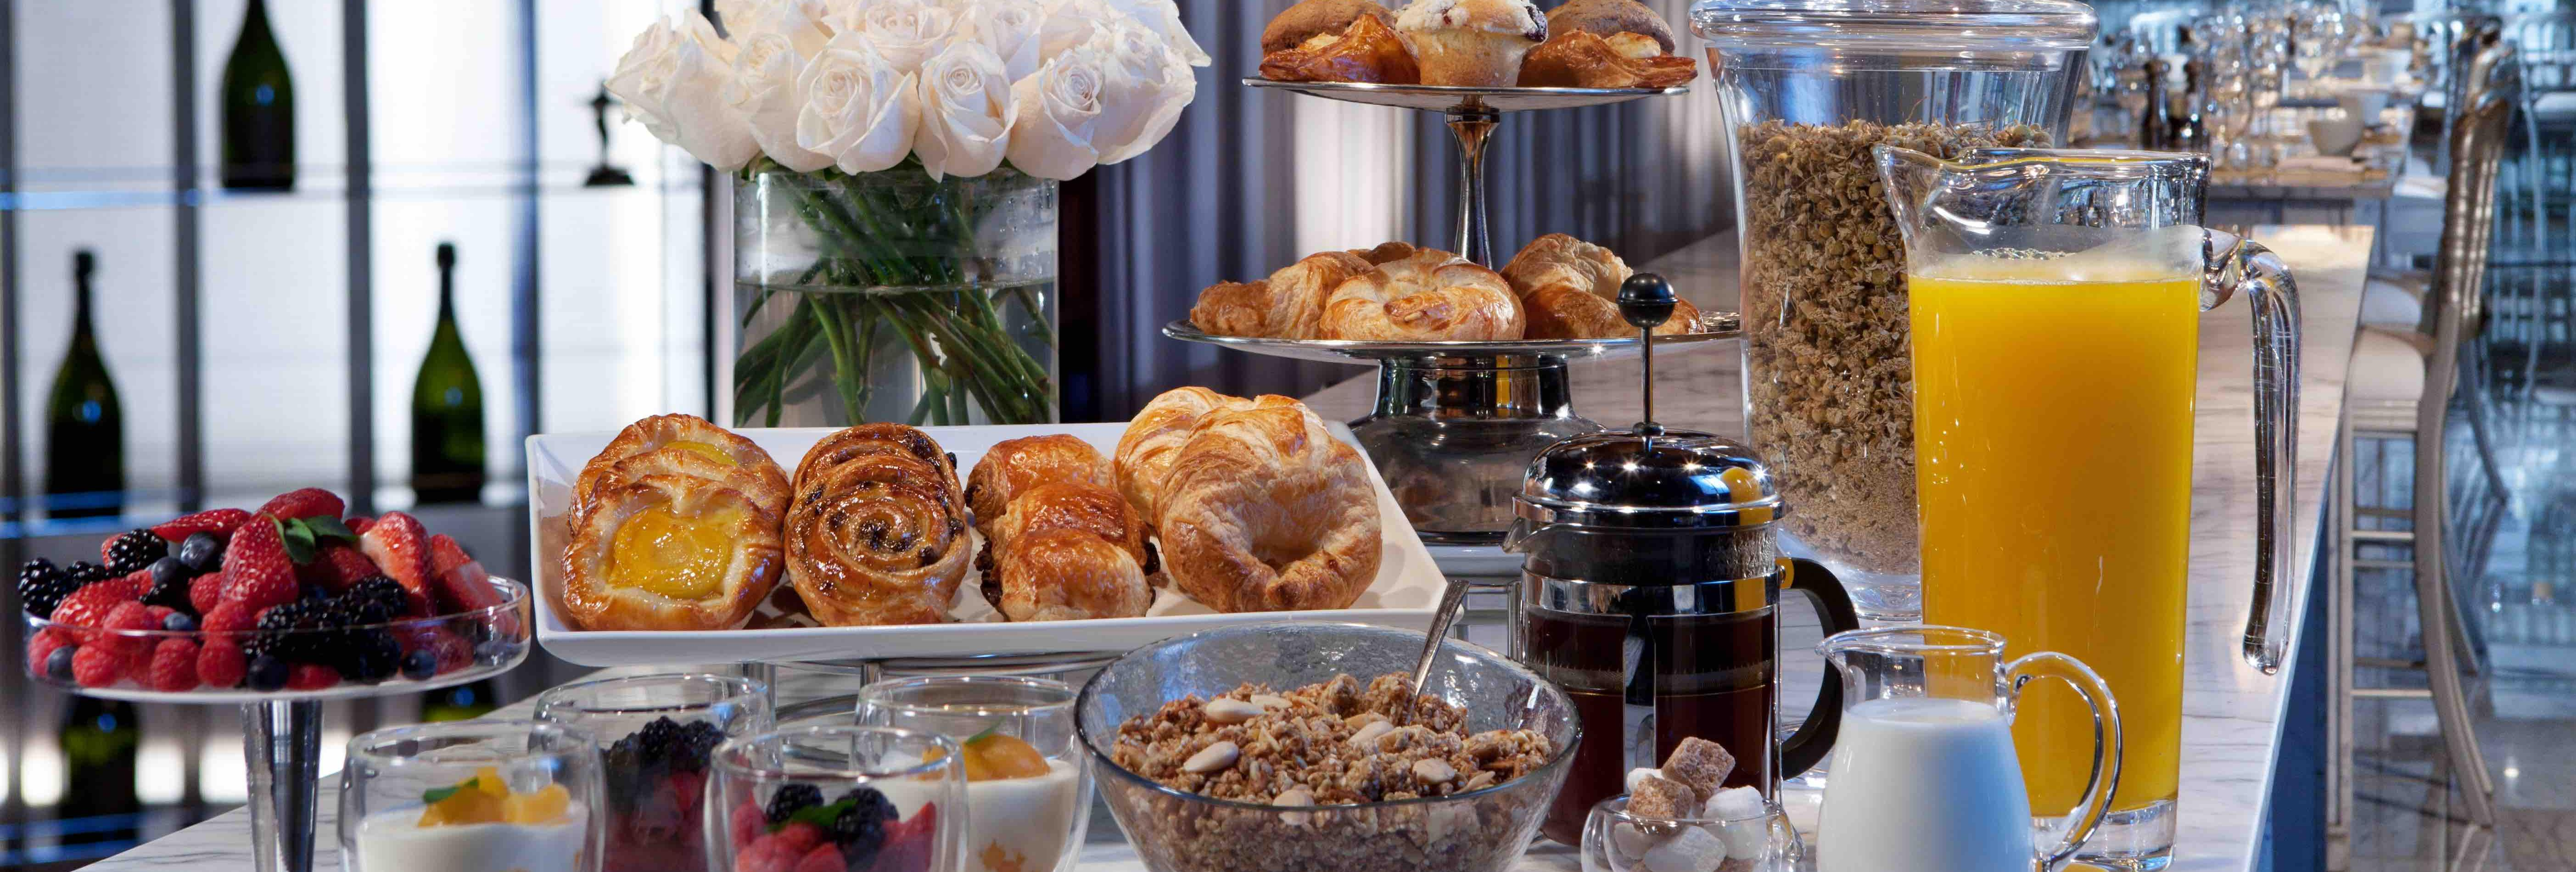 decadent breakfast spread with pastries and juice